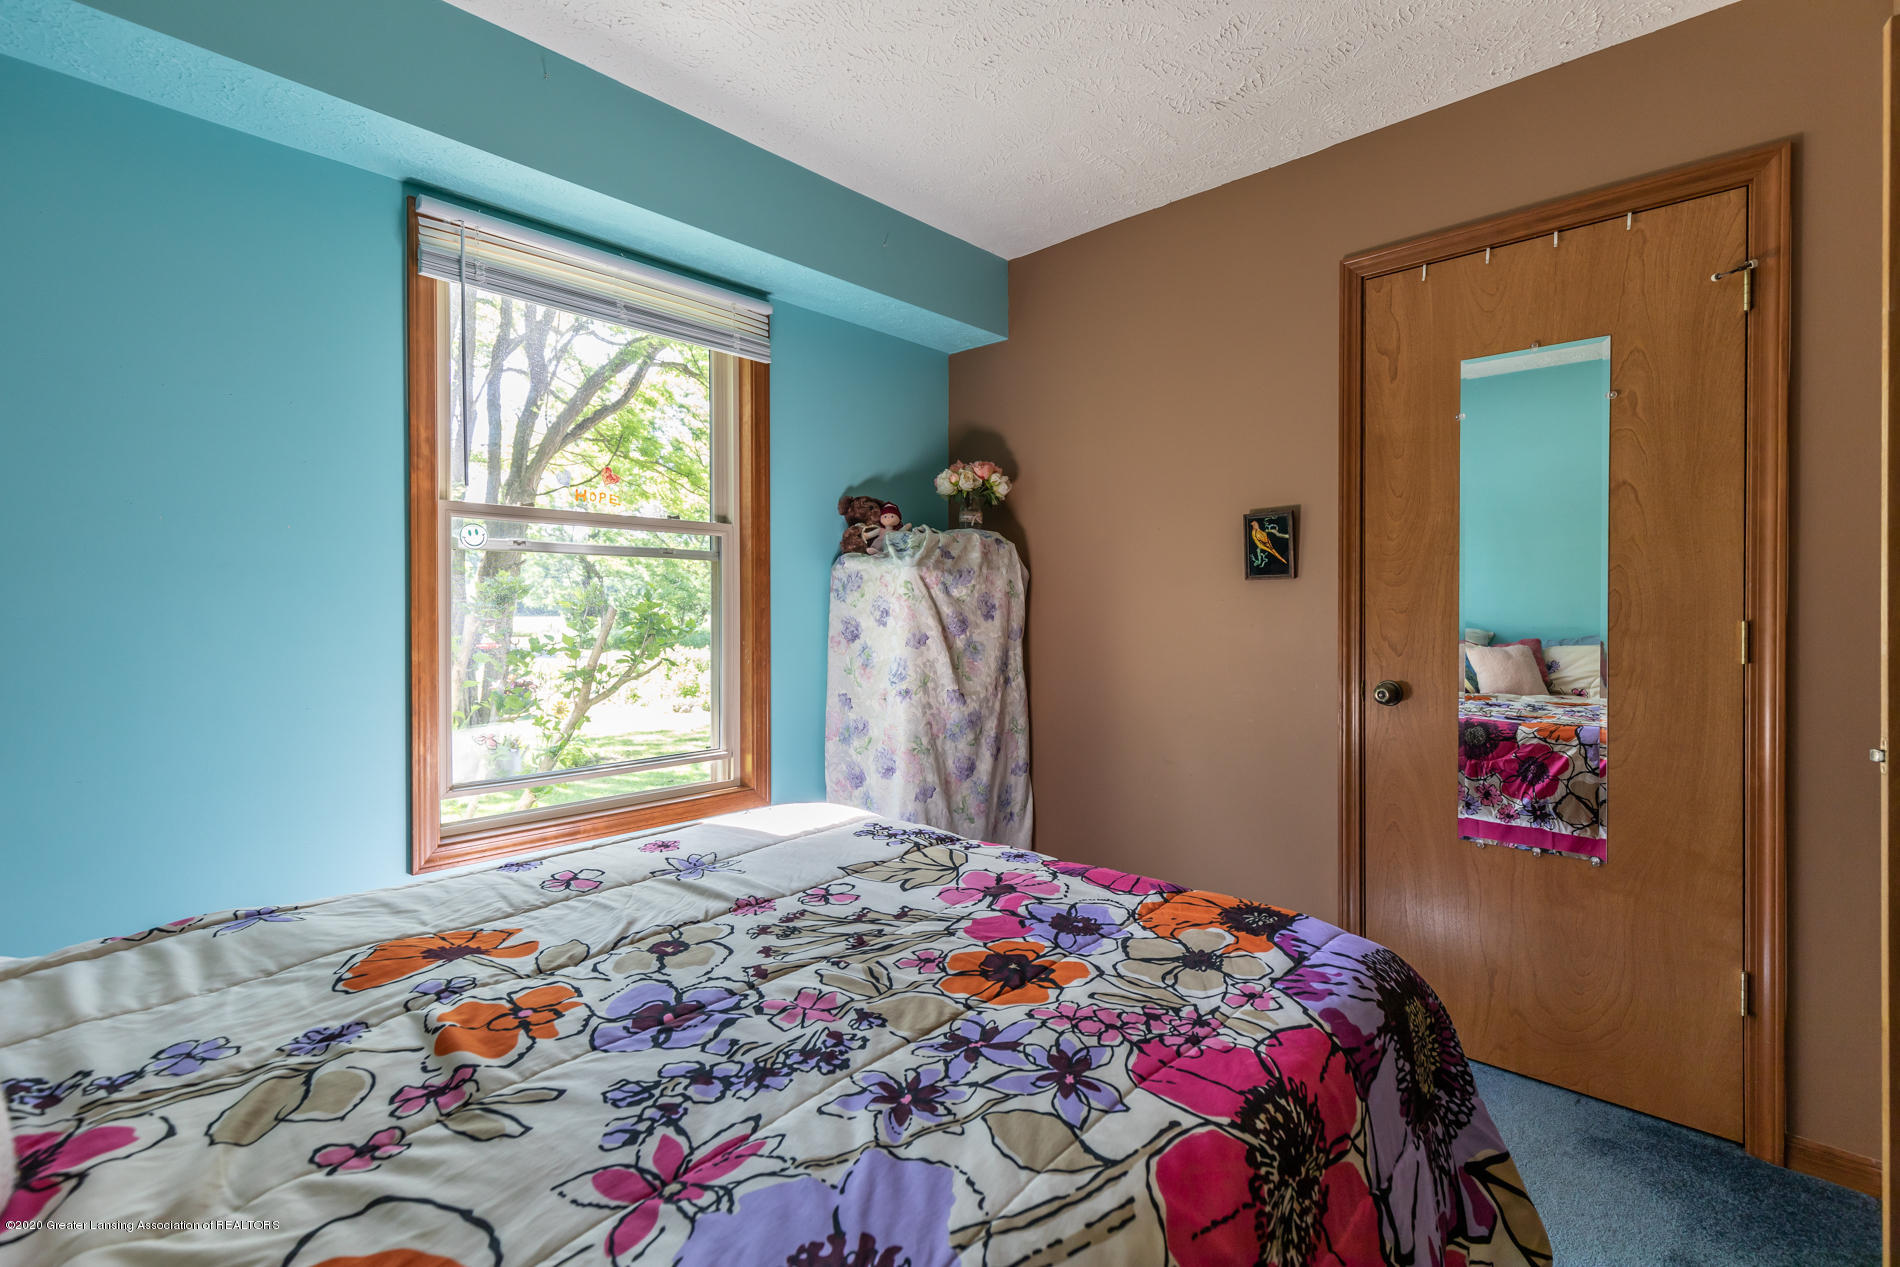 2229 S Chester Rd - Another view of bedroom - 13